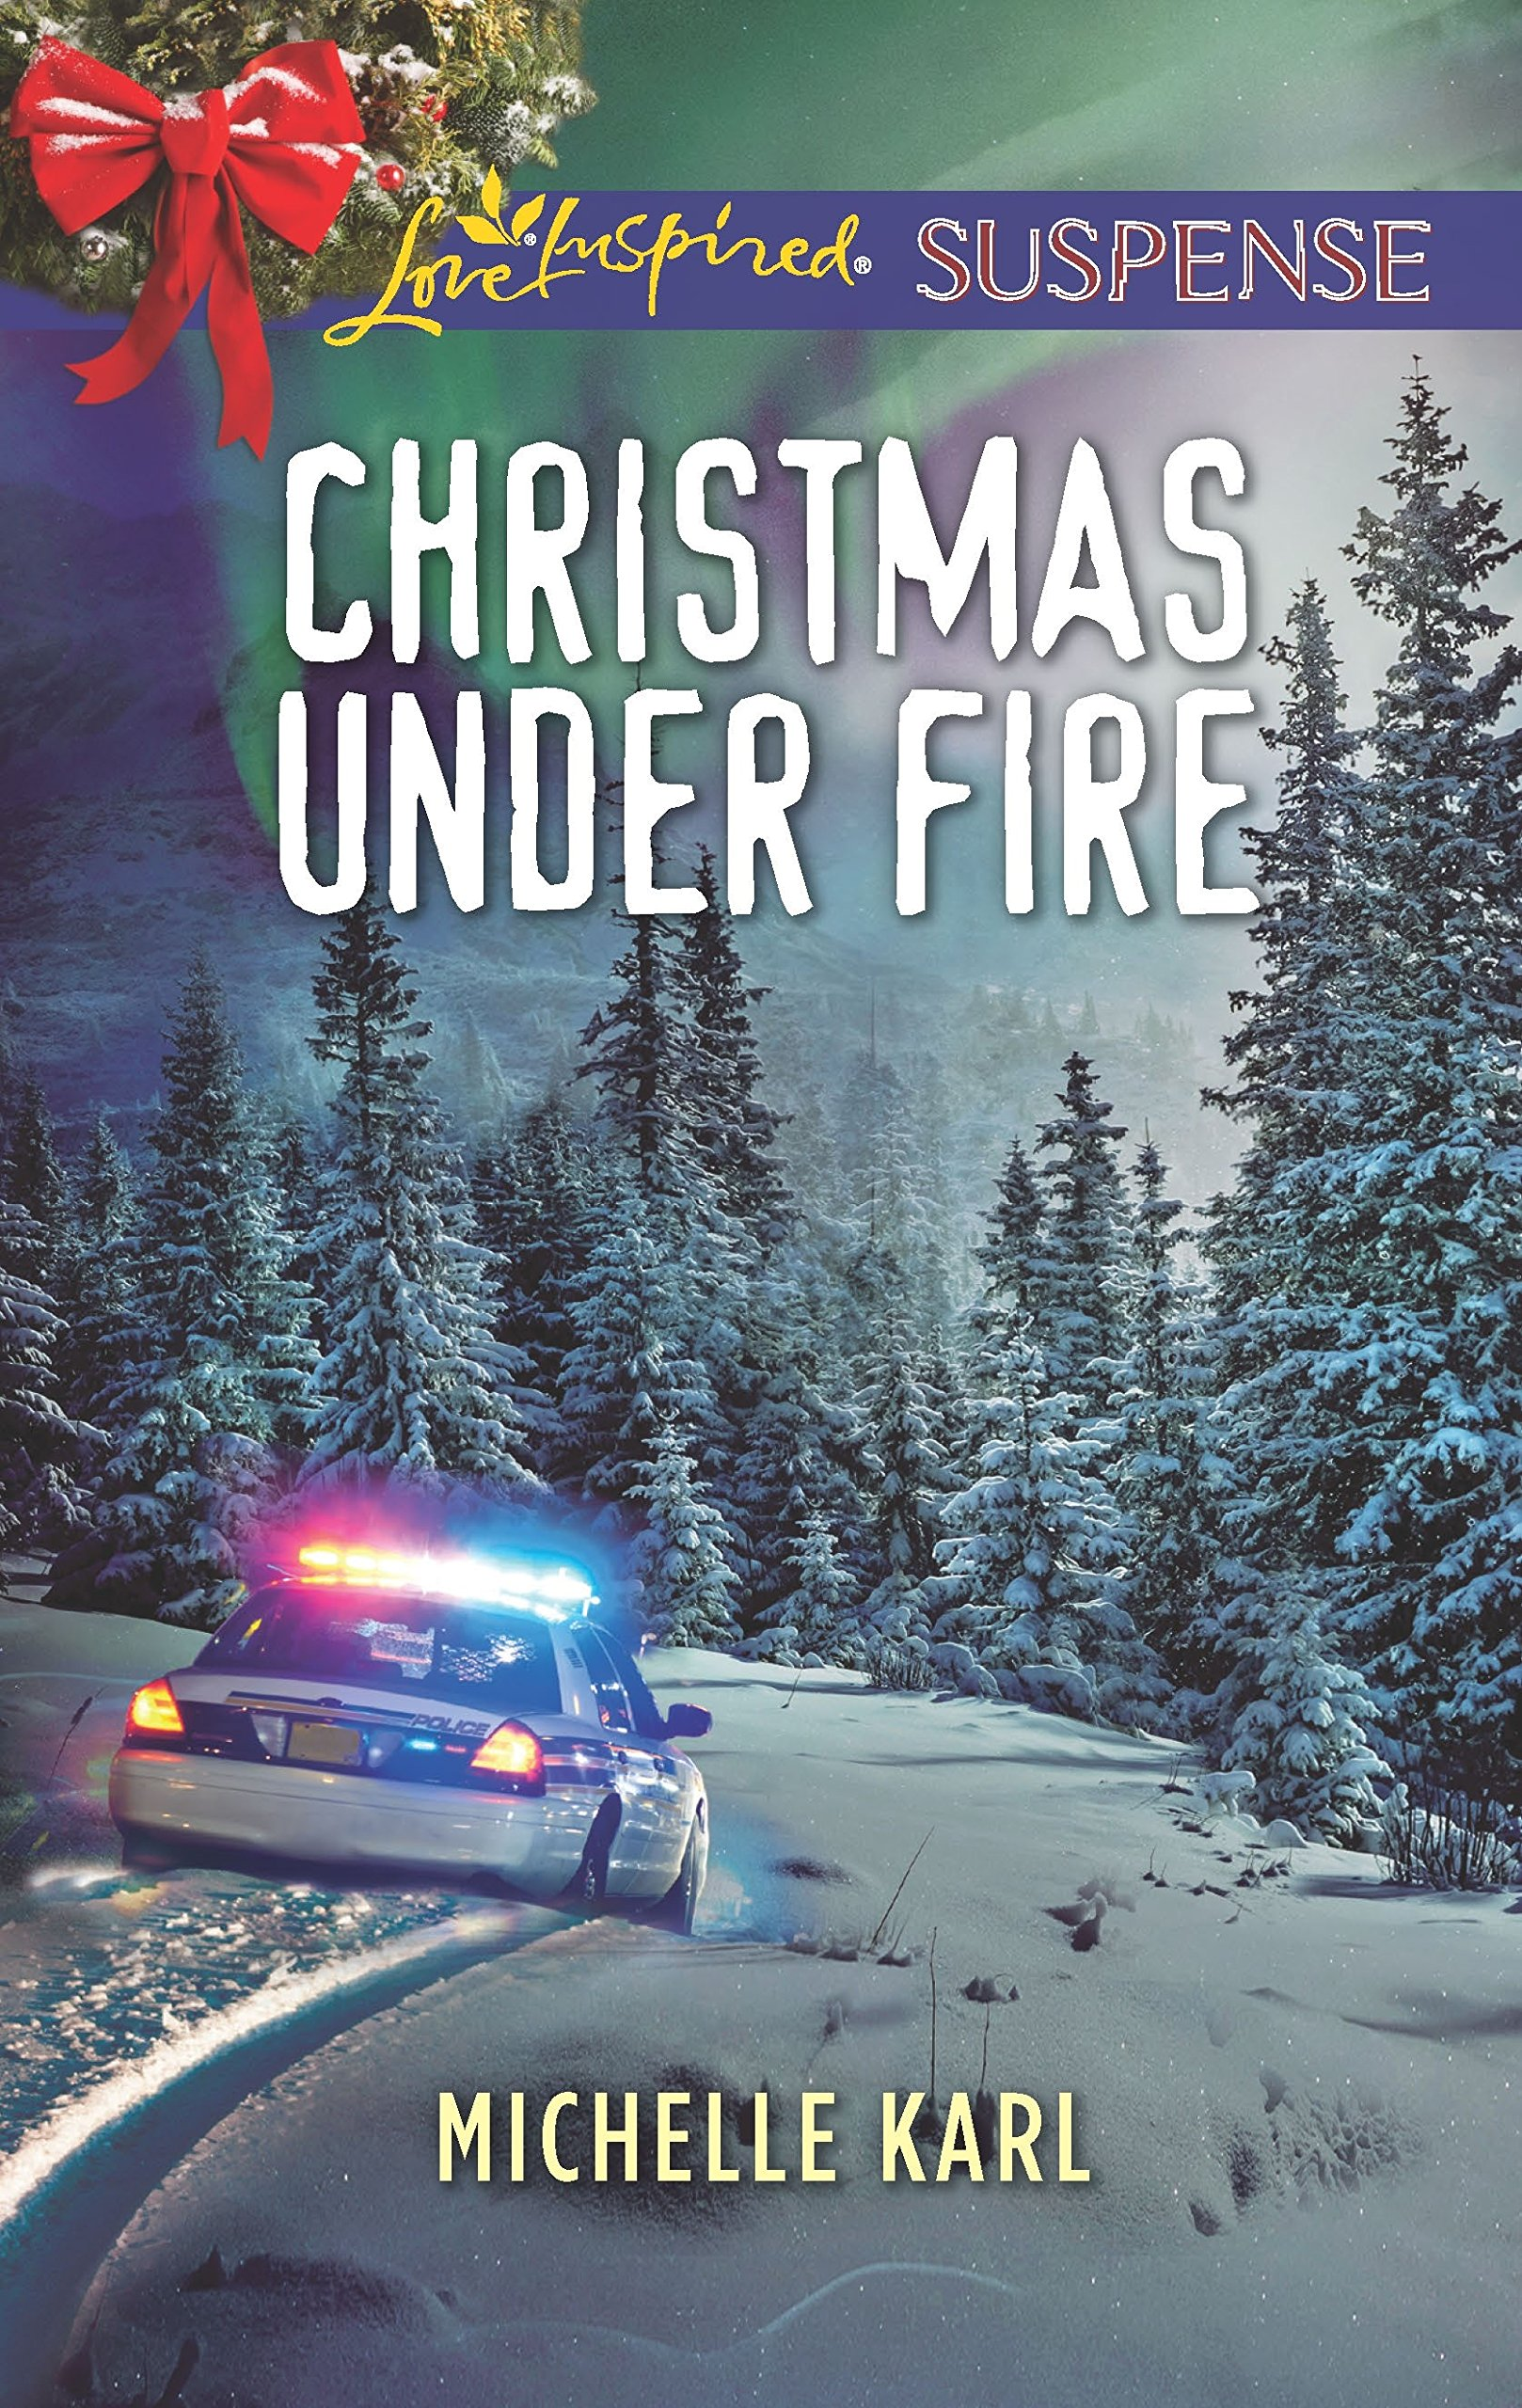 Image result for christmas under fire michelle karl